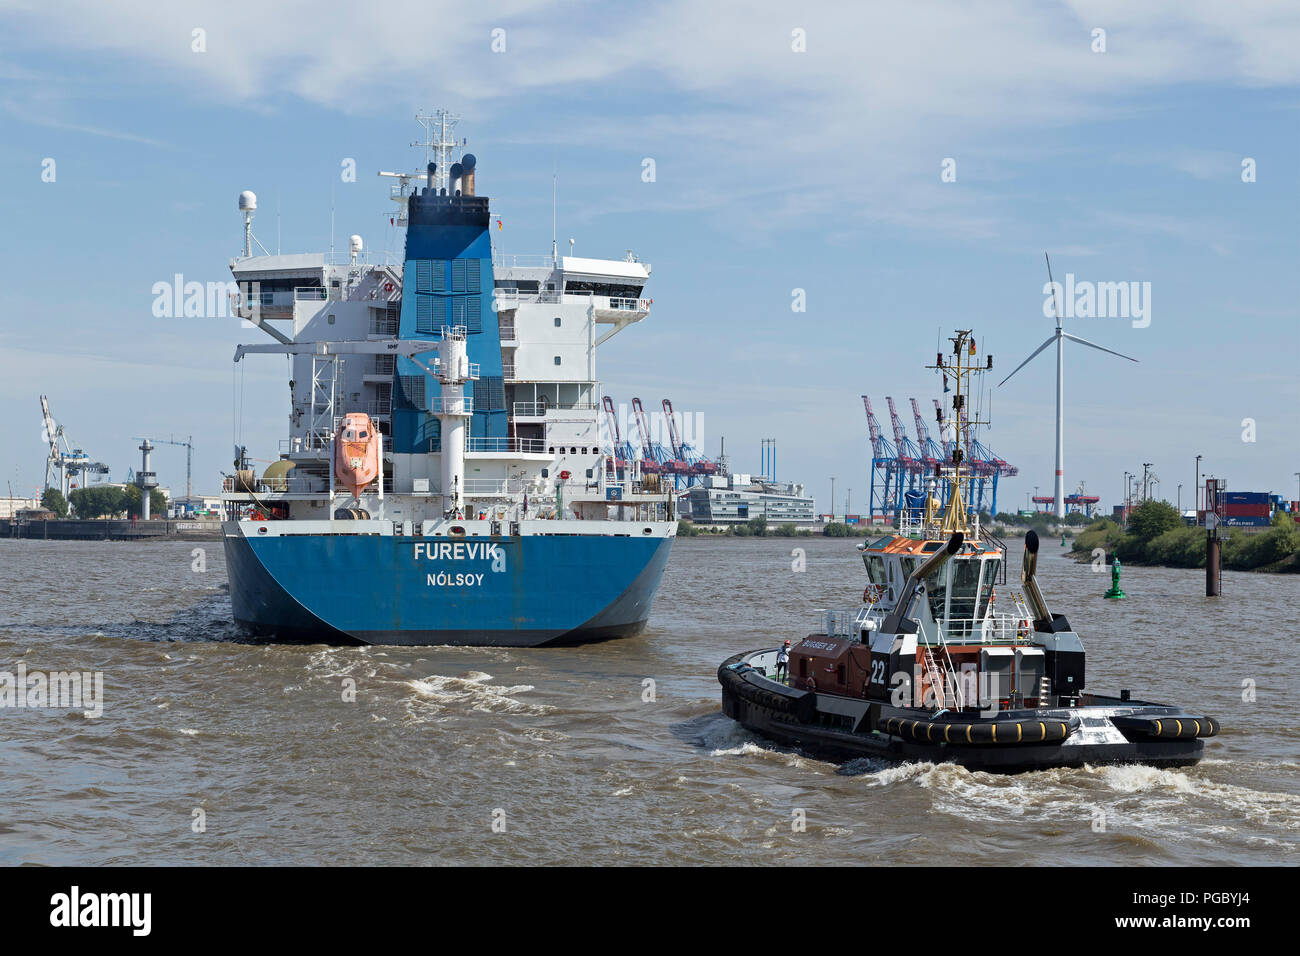 freight ship and tow boat, Harbour, Hamburg, Germany - Stock Image